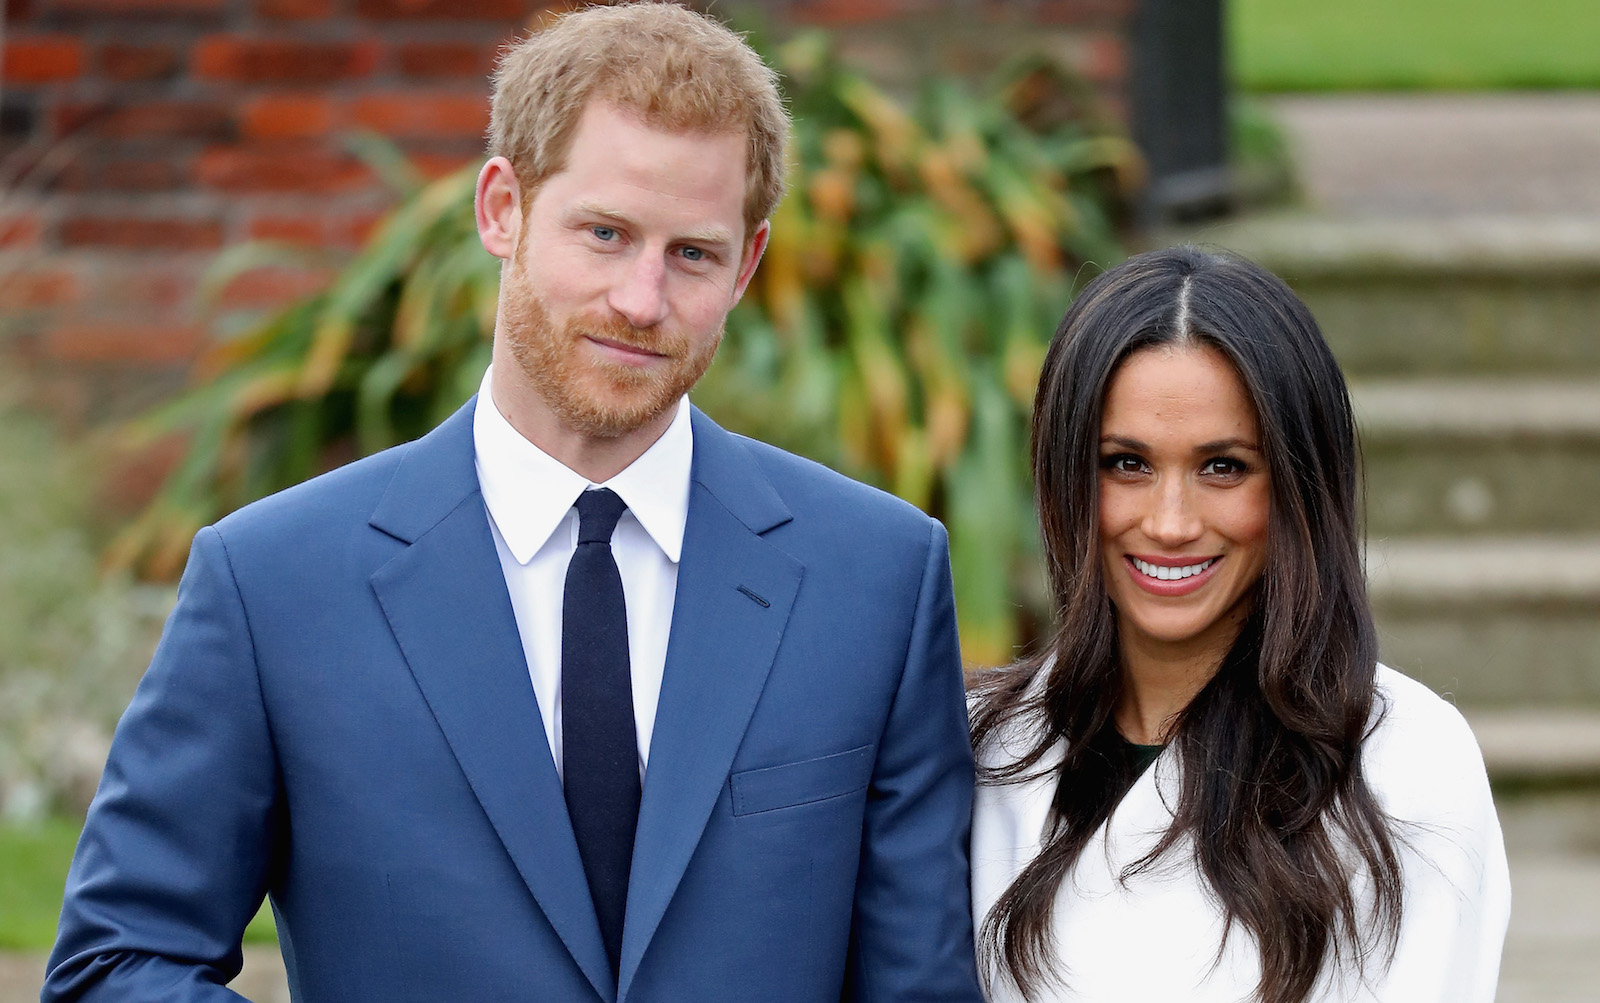 Prince Harry and Meghan Markle announce their wedding date